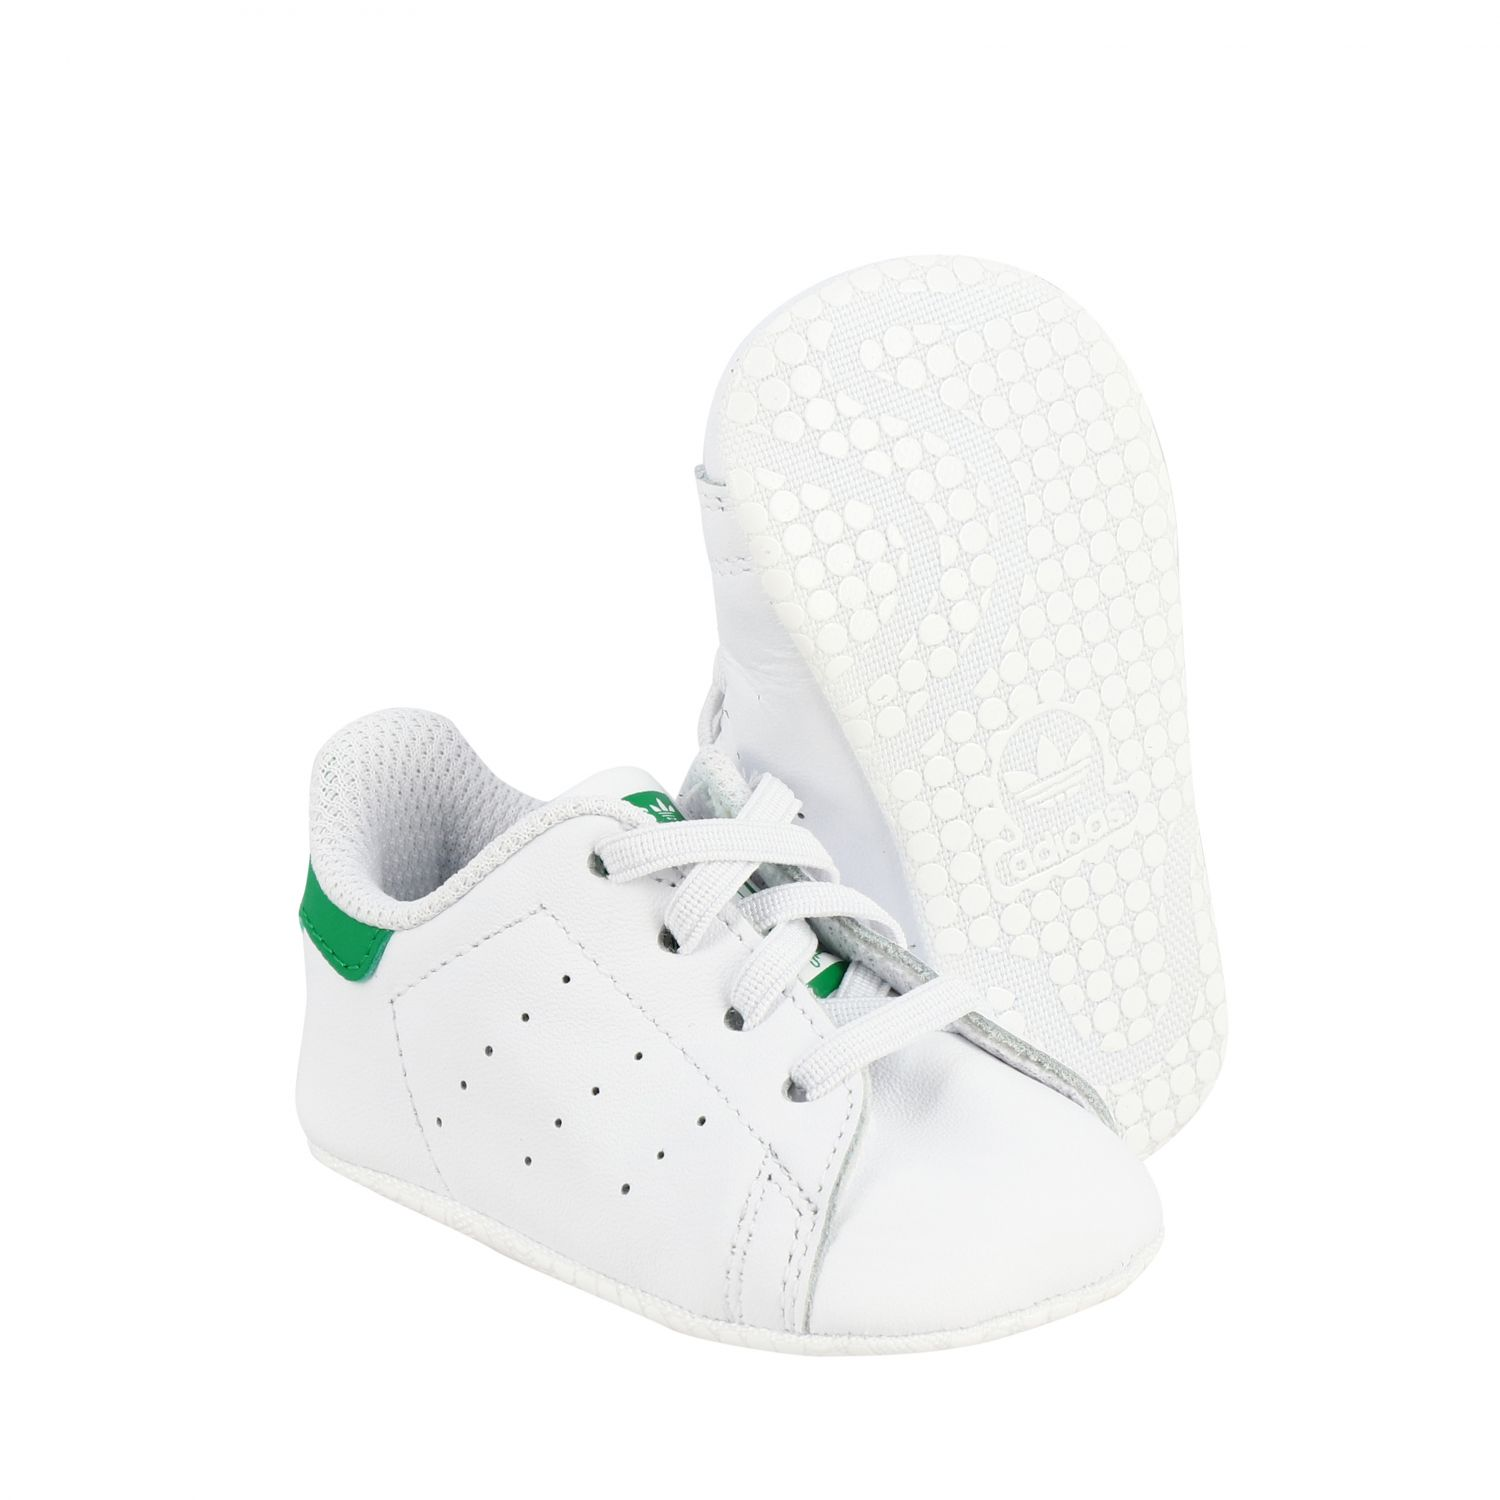 Shoes Adidas Originals: Stan smith Crib Adidas Originals leather sneakers white 2